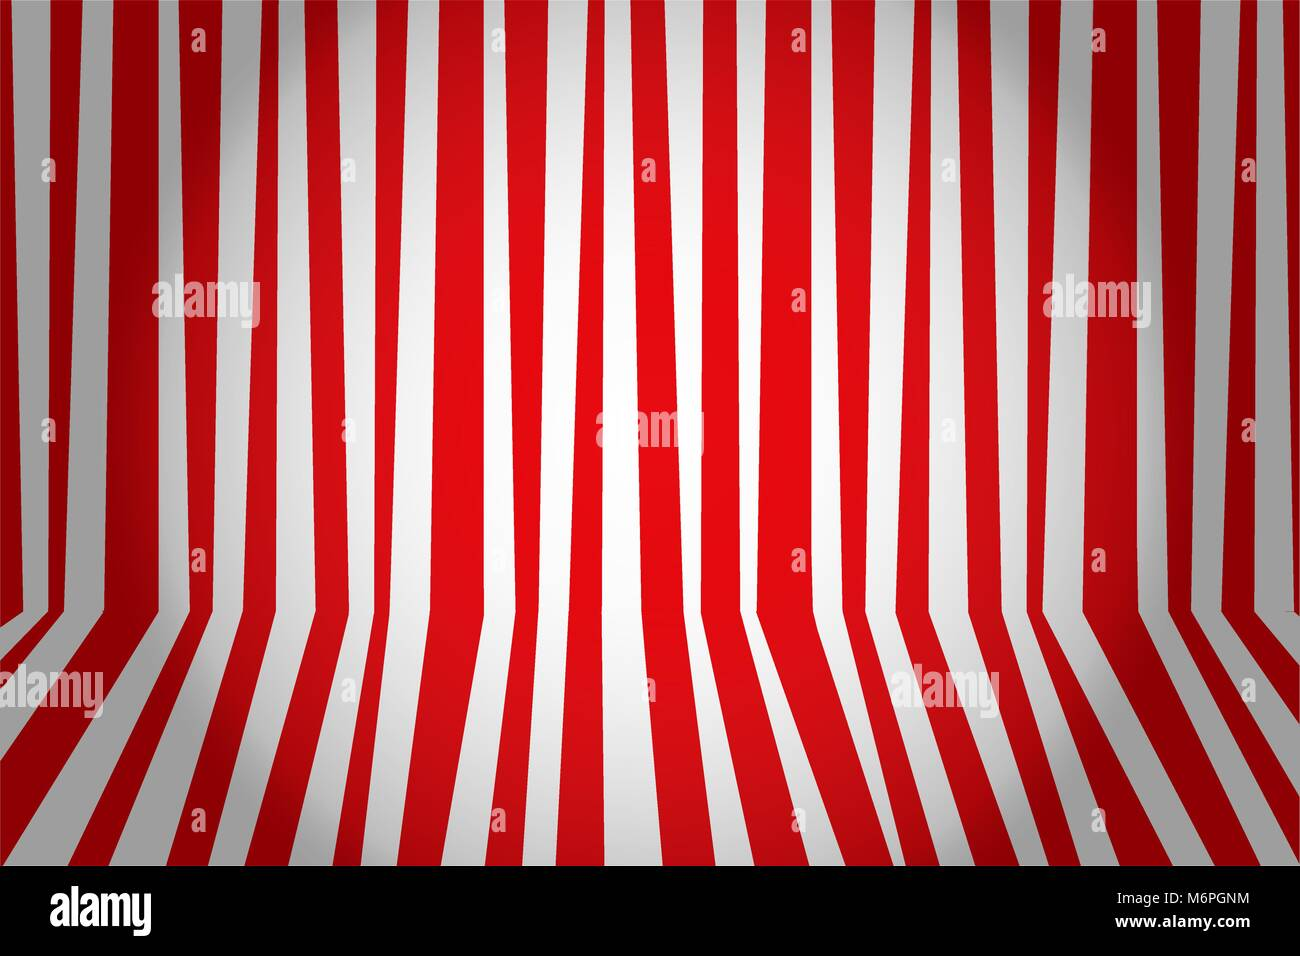 Christmas and new year background striped room in red and white. Vector illustration. - Stock Vector